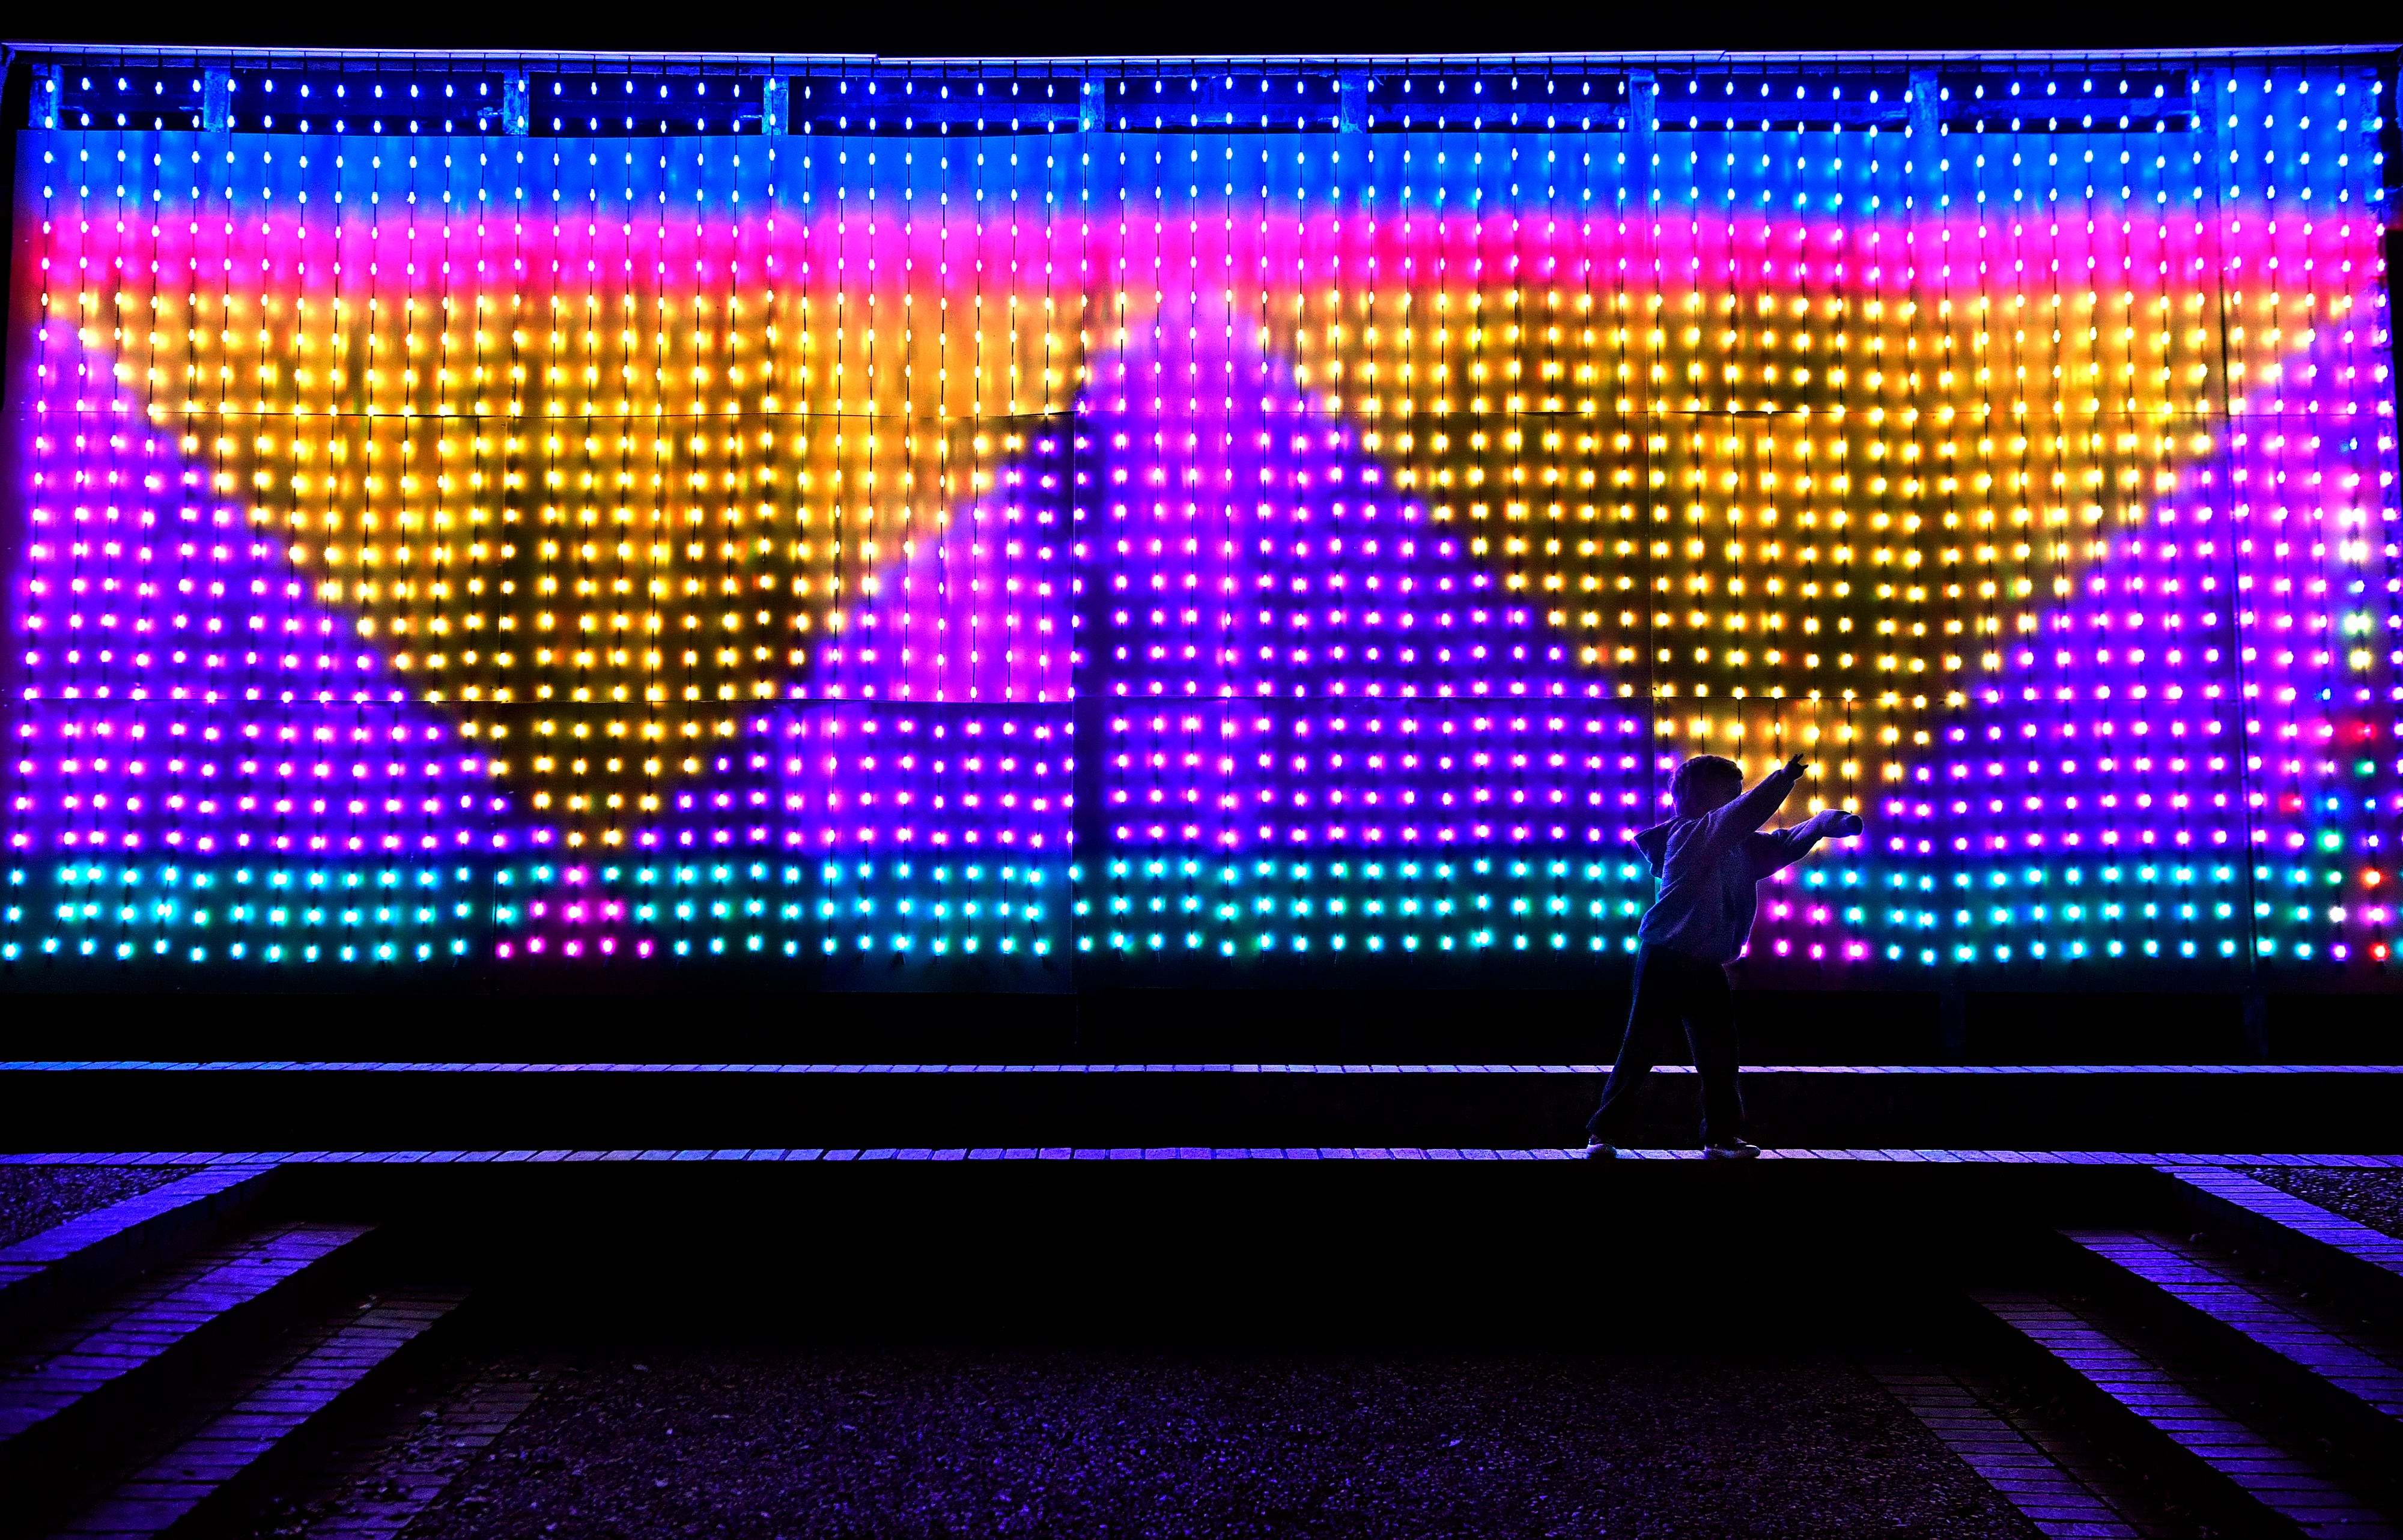 A child plays Thursday in front of the electric display in Minter Park.